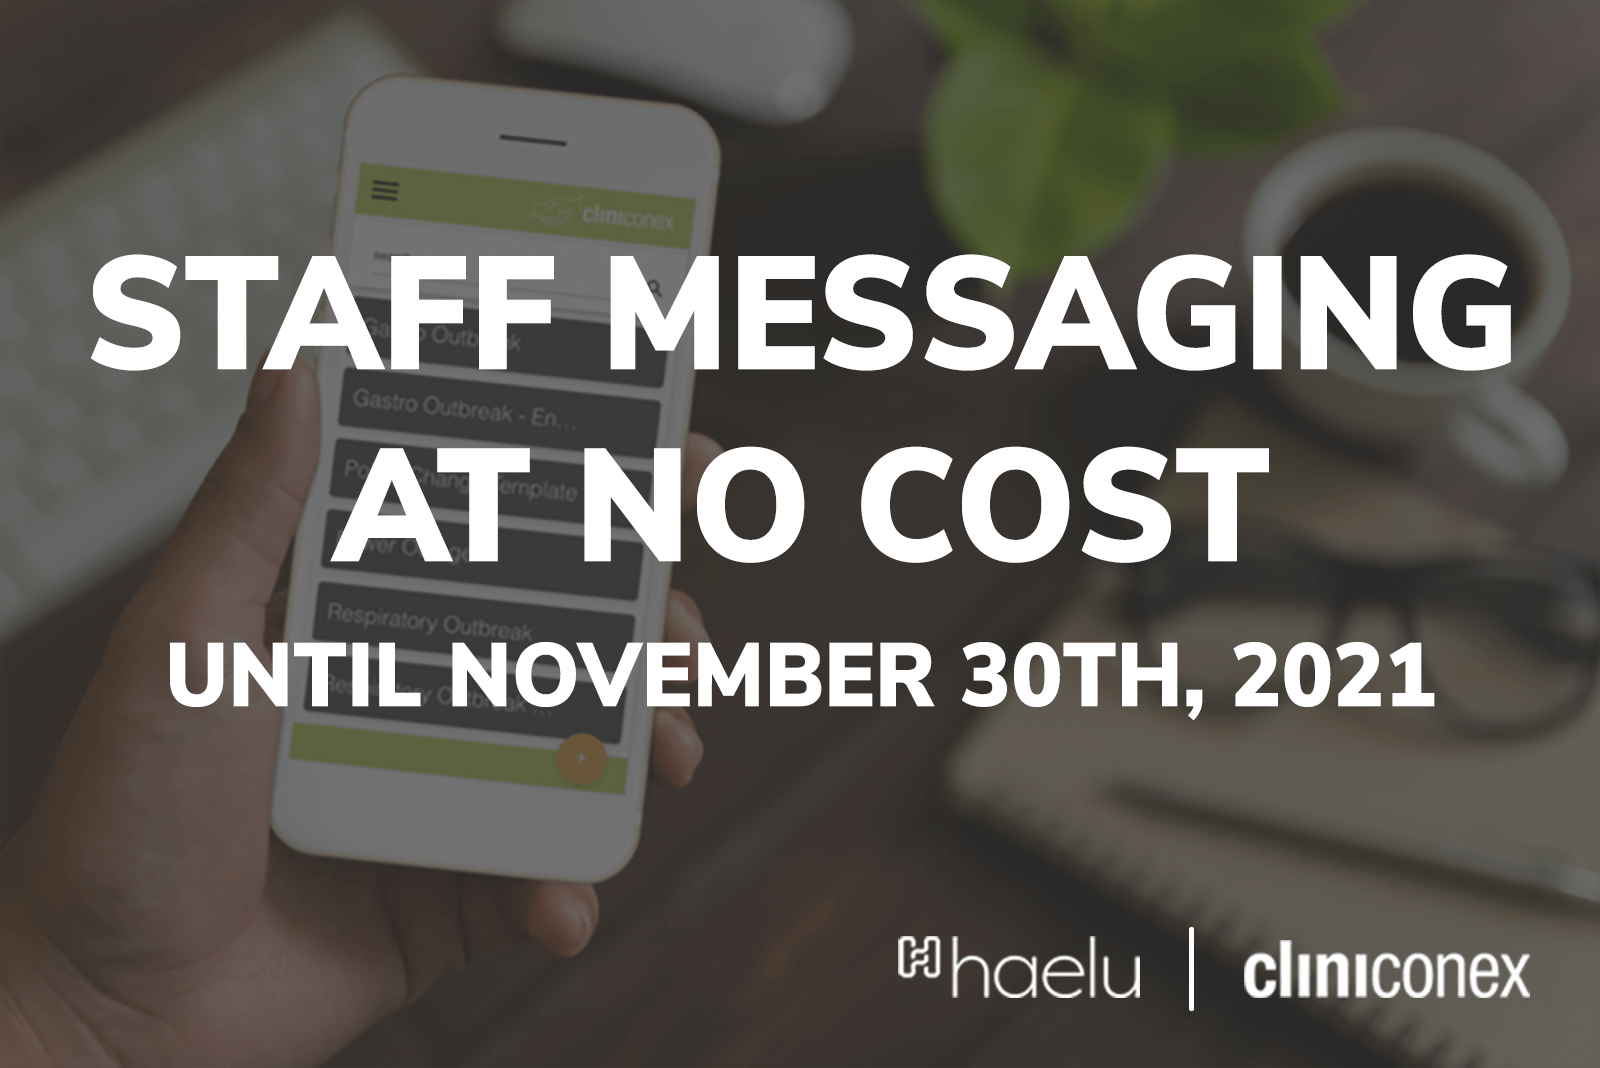 Staff messaging at no cost until November 30th 2021 - Heyloo in partnership with Cliniconex